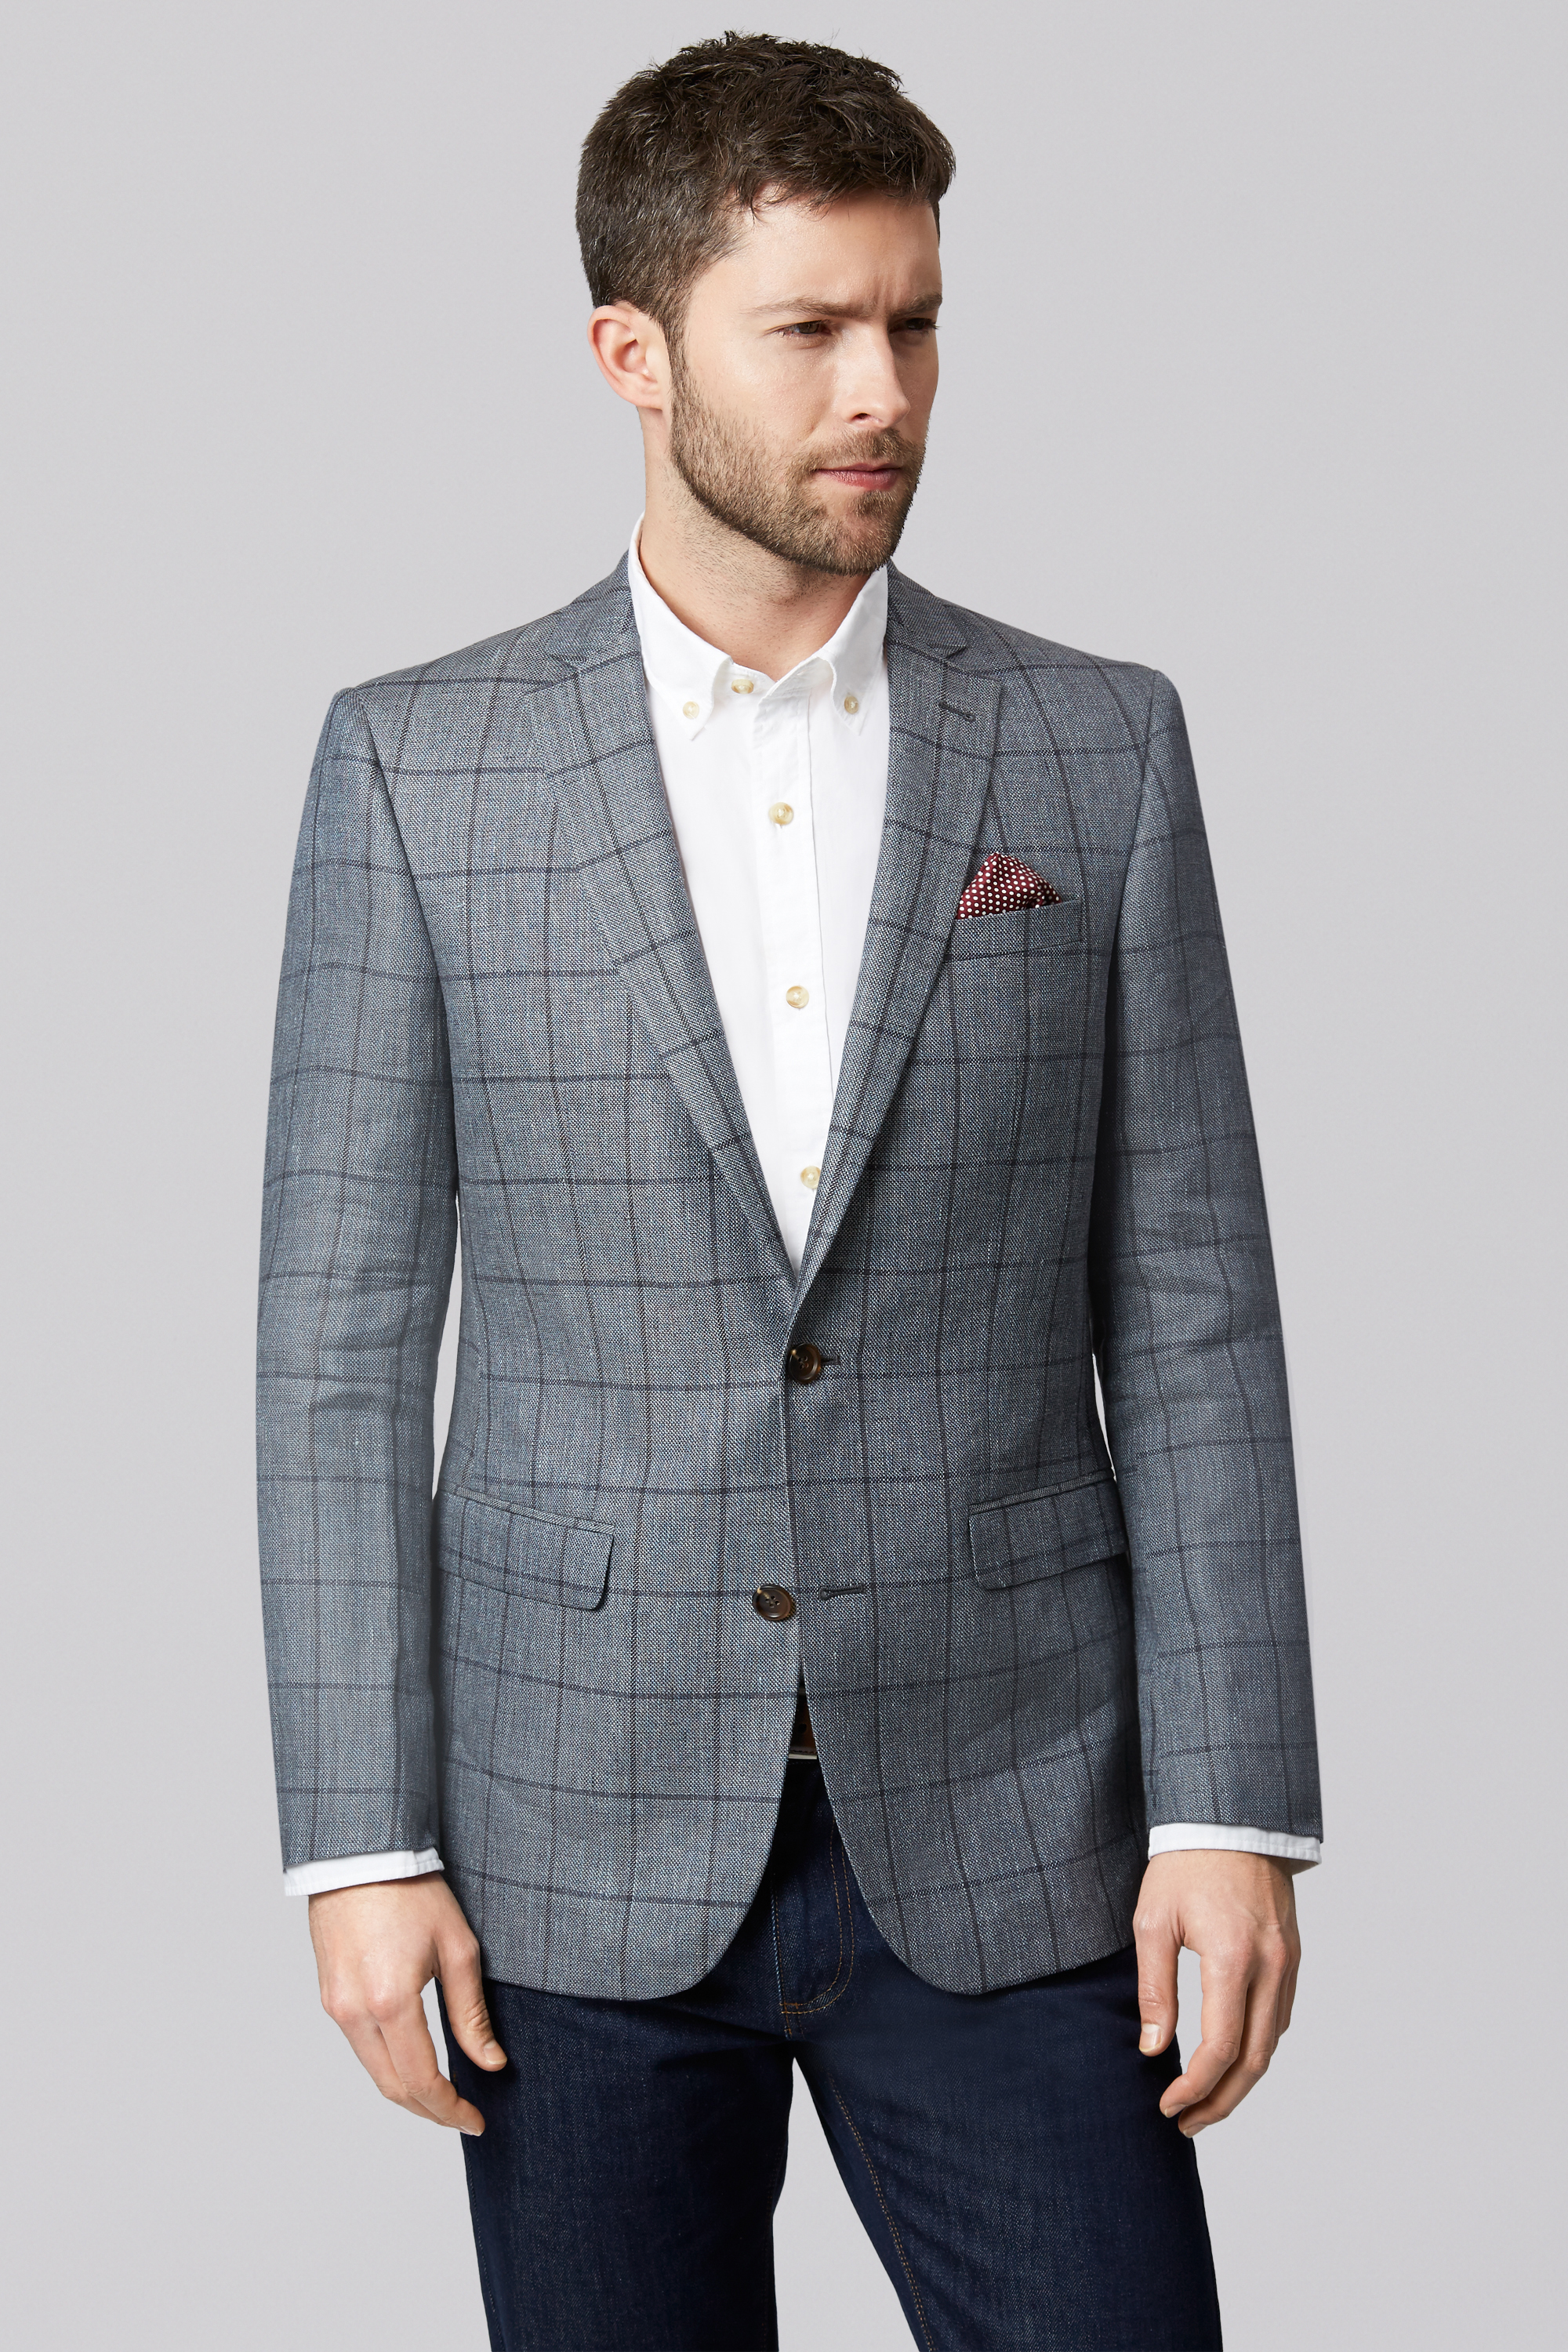 Moss 1851 Mens Suit Jacket Tailored Fit Grey Check Design Dinner ...